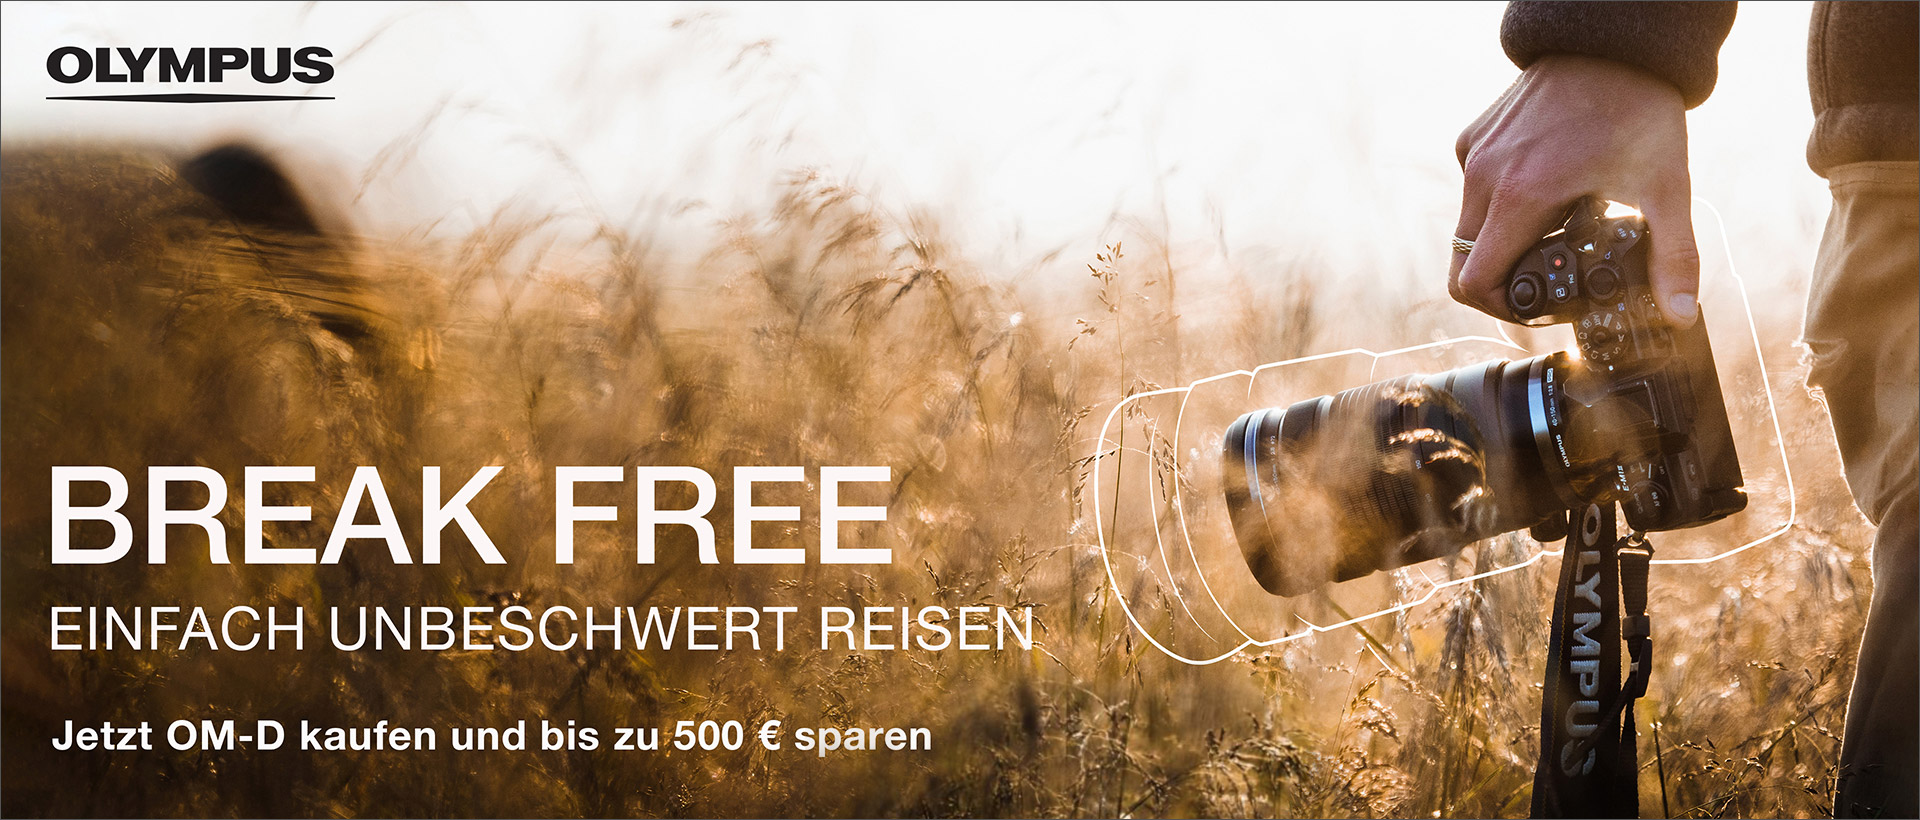 Olympus Herbst Promotion